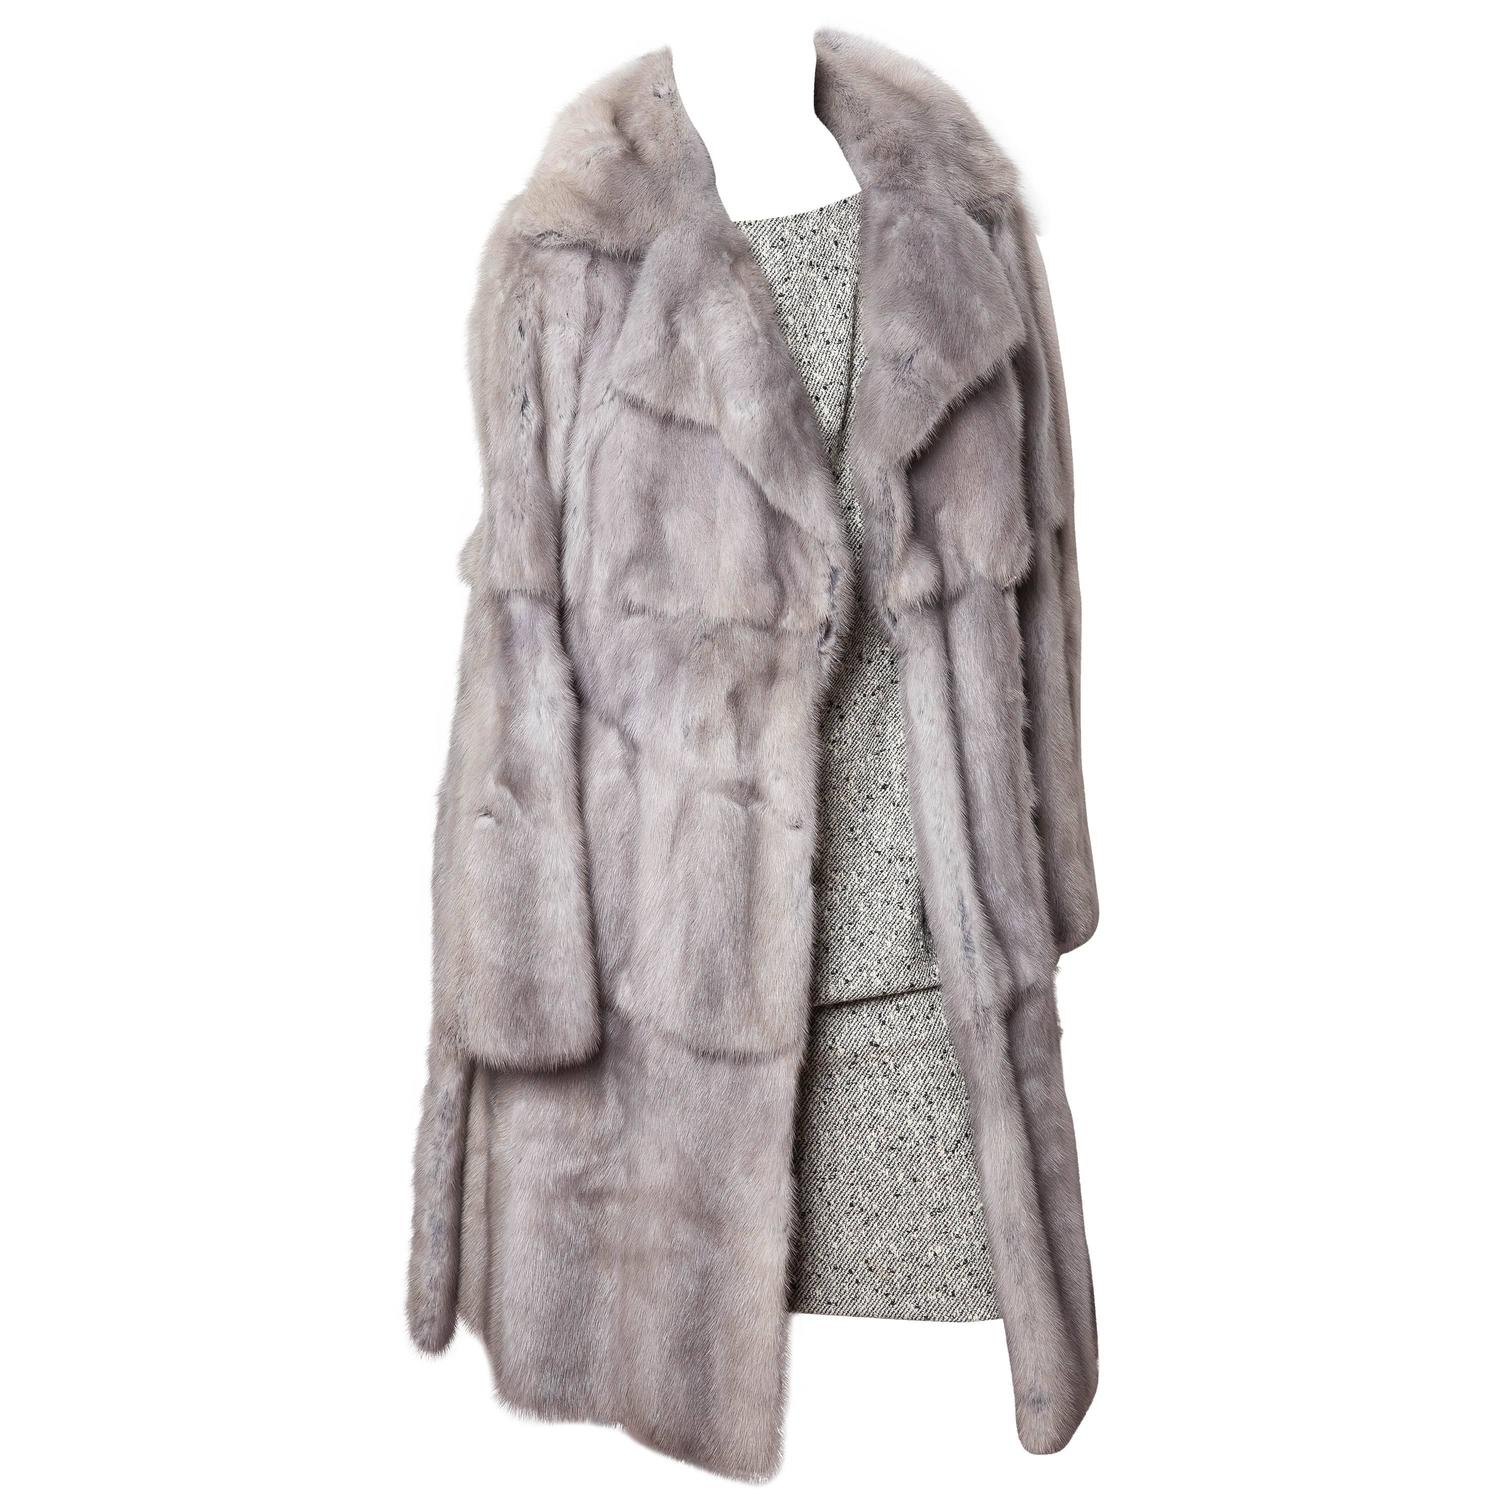 Fendi RARE Vintage Russian Ermine Fur Coat at I.Magnin at 1stdibs